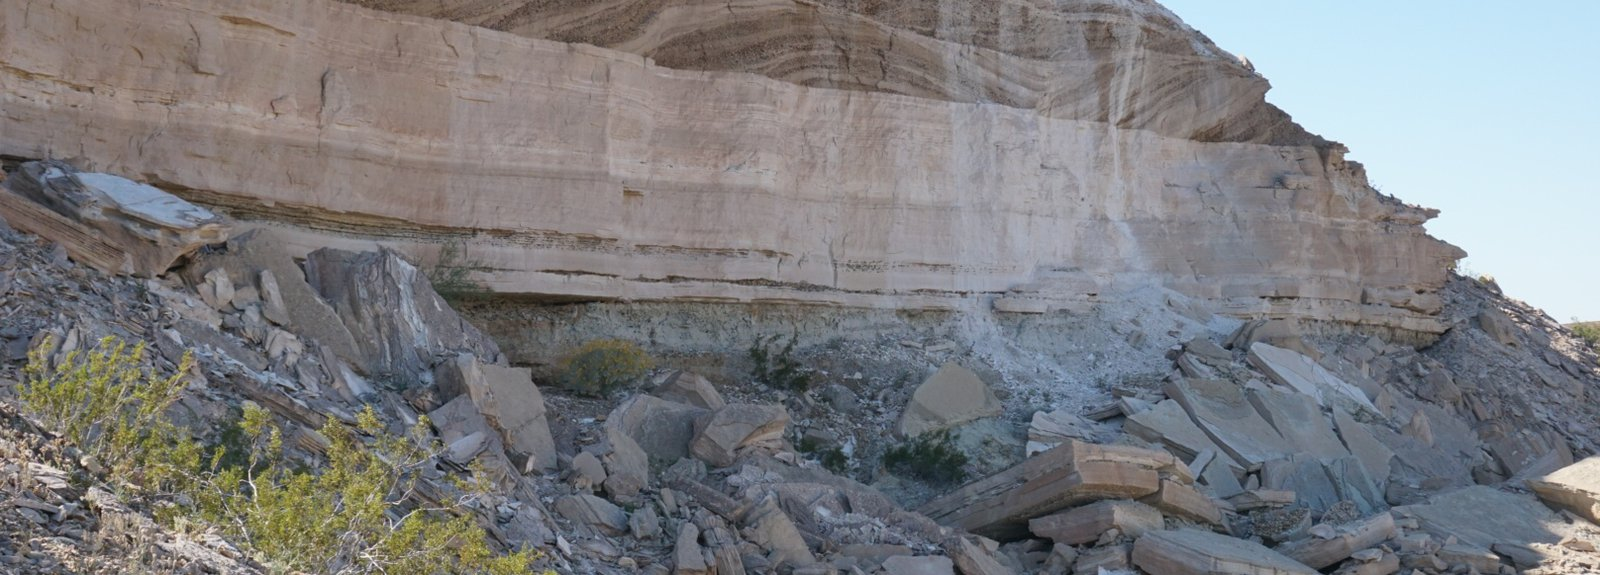 A cliff outcrop of rock formation, with large scale cross bedding.